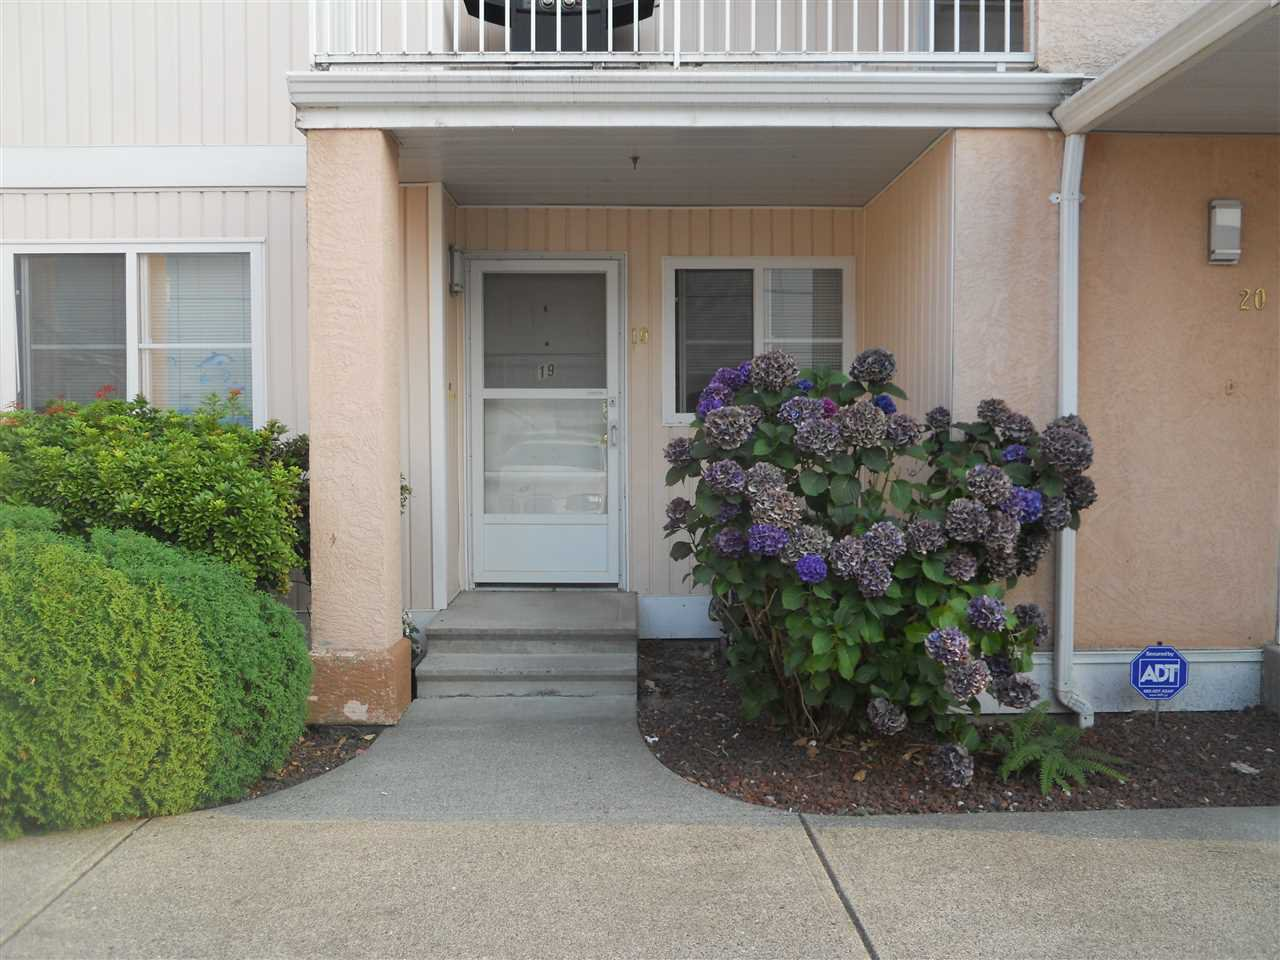 """Main Photo: 19 5915 VEDDER Road in Sardis: Vedder S Watson-Promontory Townhouse for sale in """"Melrose Place"""" : MLS®# R2195975"""